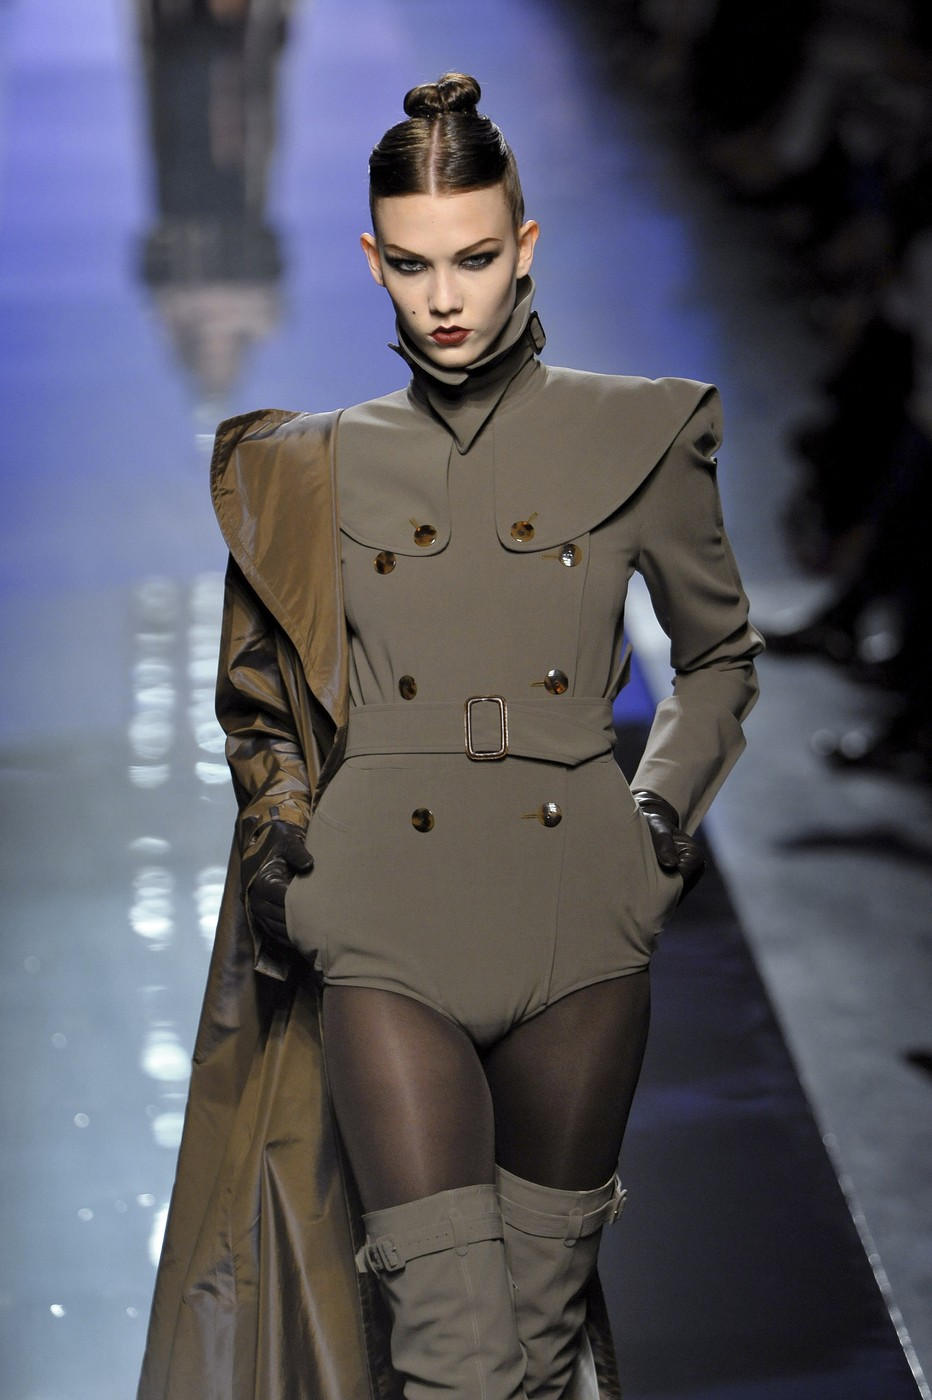 jean paul gaultier at couture fall 2009 livingly. Black Bedroom Furniture Sets. Home Design Ideas